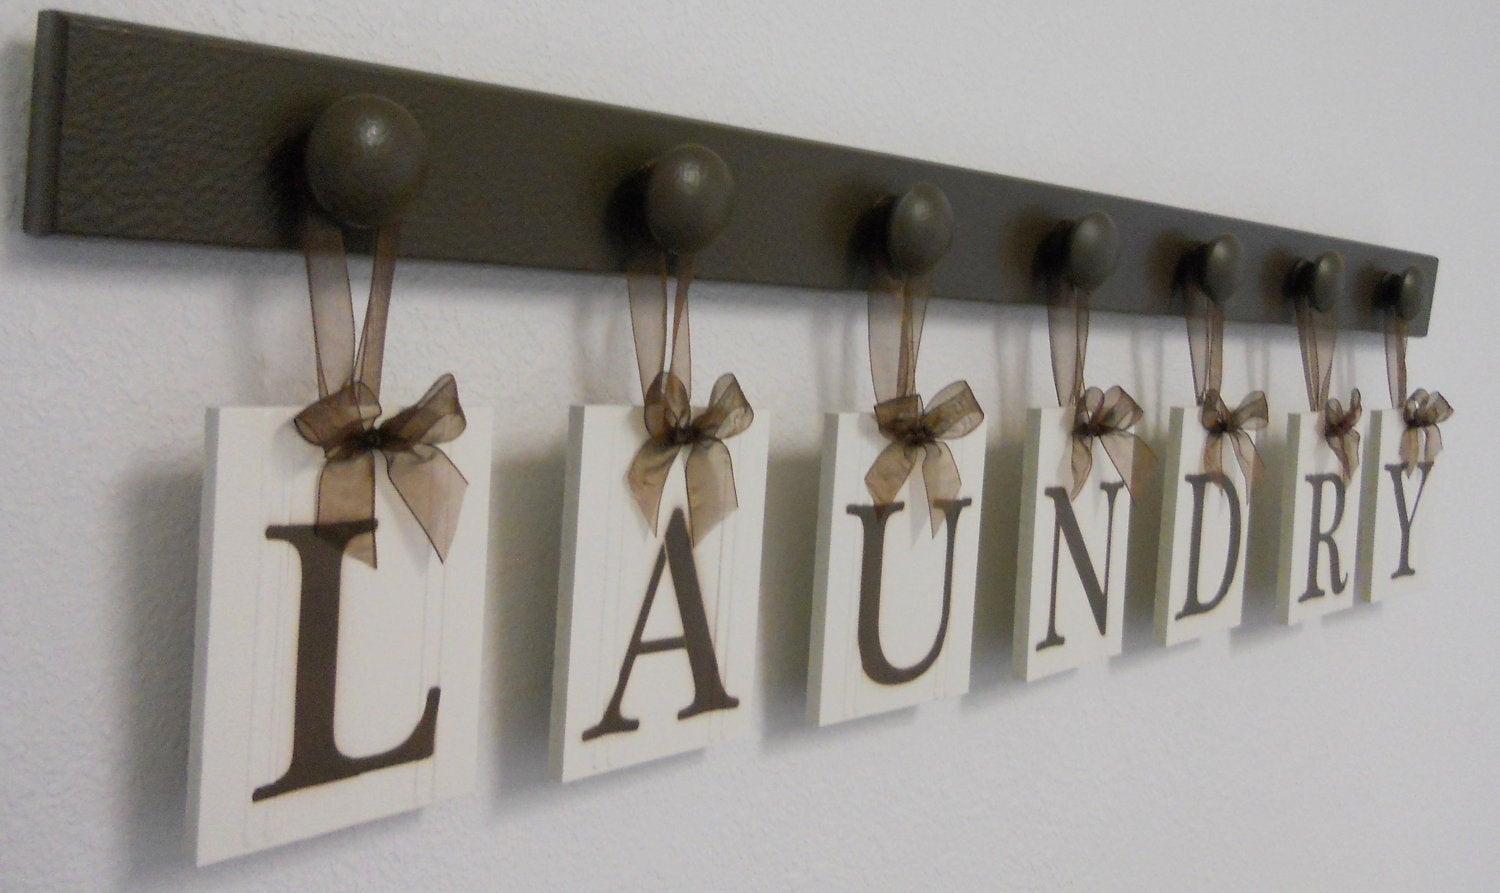 Laundry Room Signs Wall Decor – Courtyard Garden And Pool With Metal Laundry Room Wall Decor (View 12 of 30)